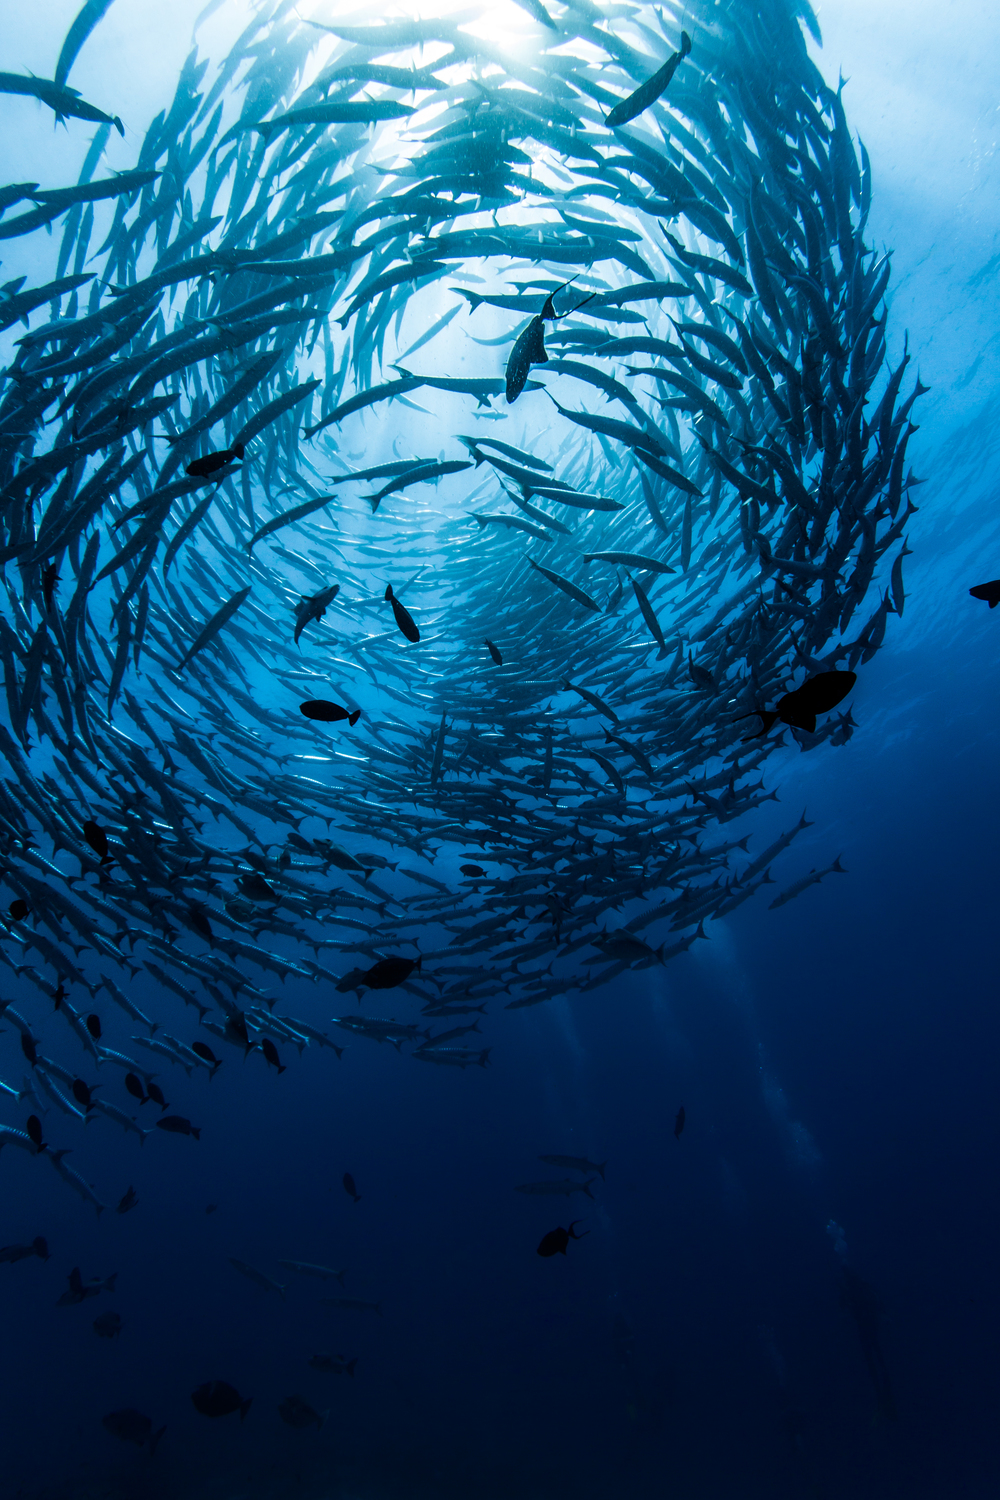 A barracuda vortex develops as divers look on